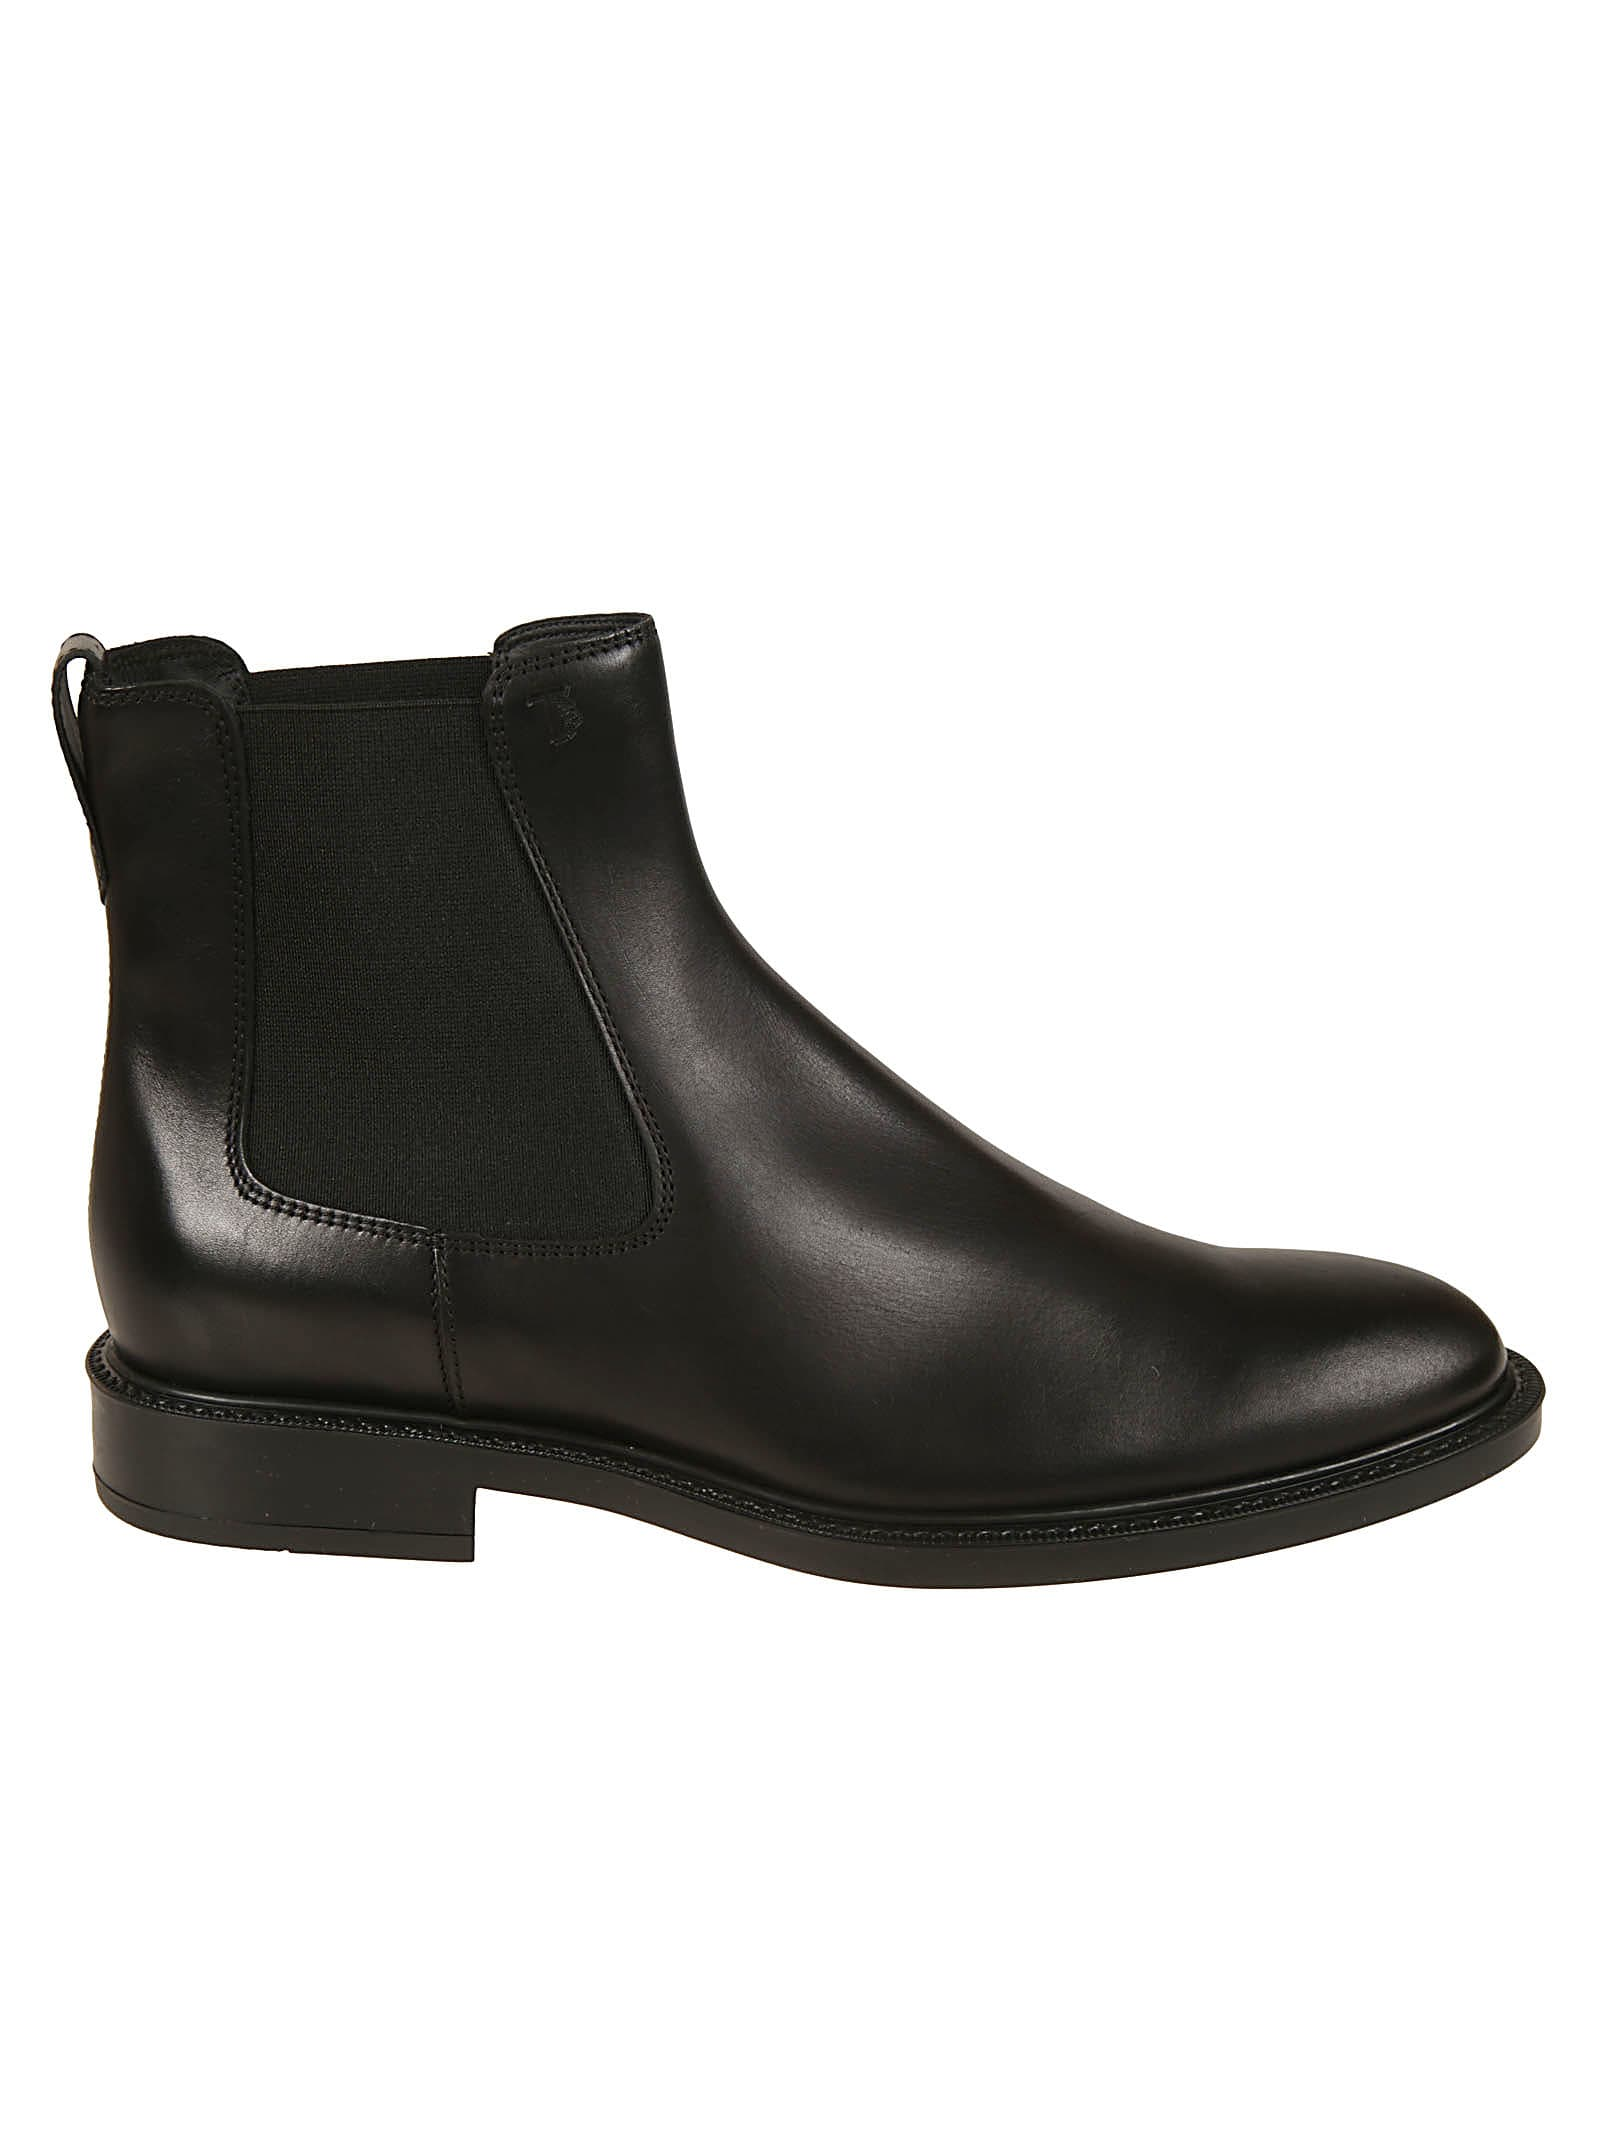 Tods Elasticated Side Ankle Boots